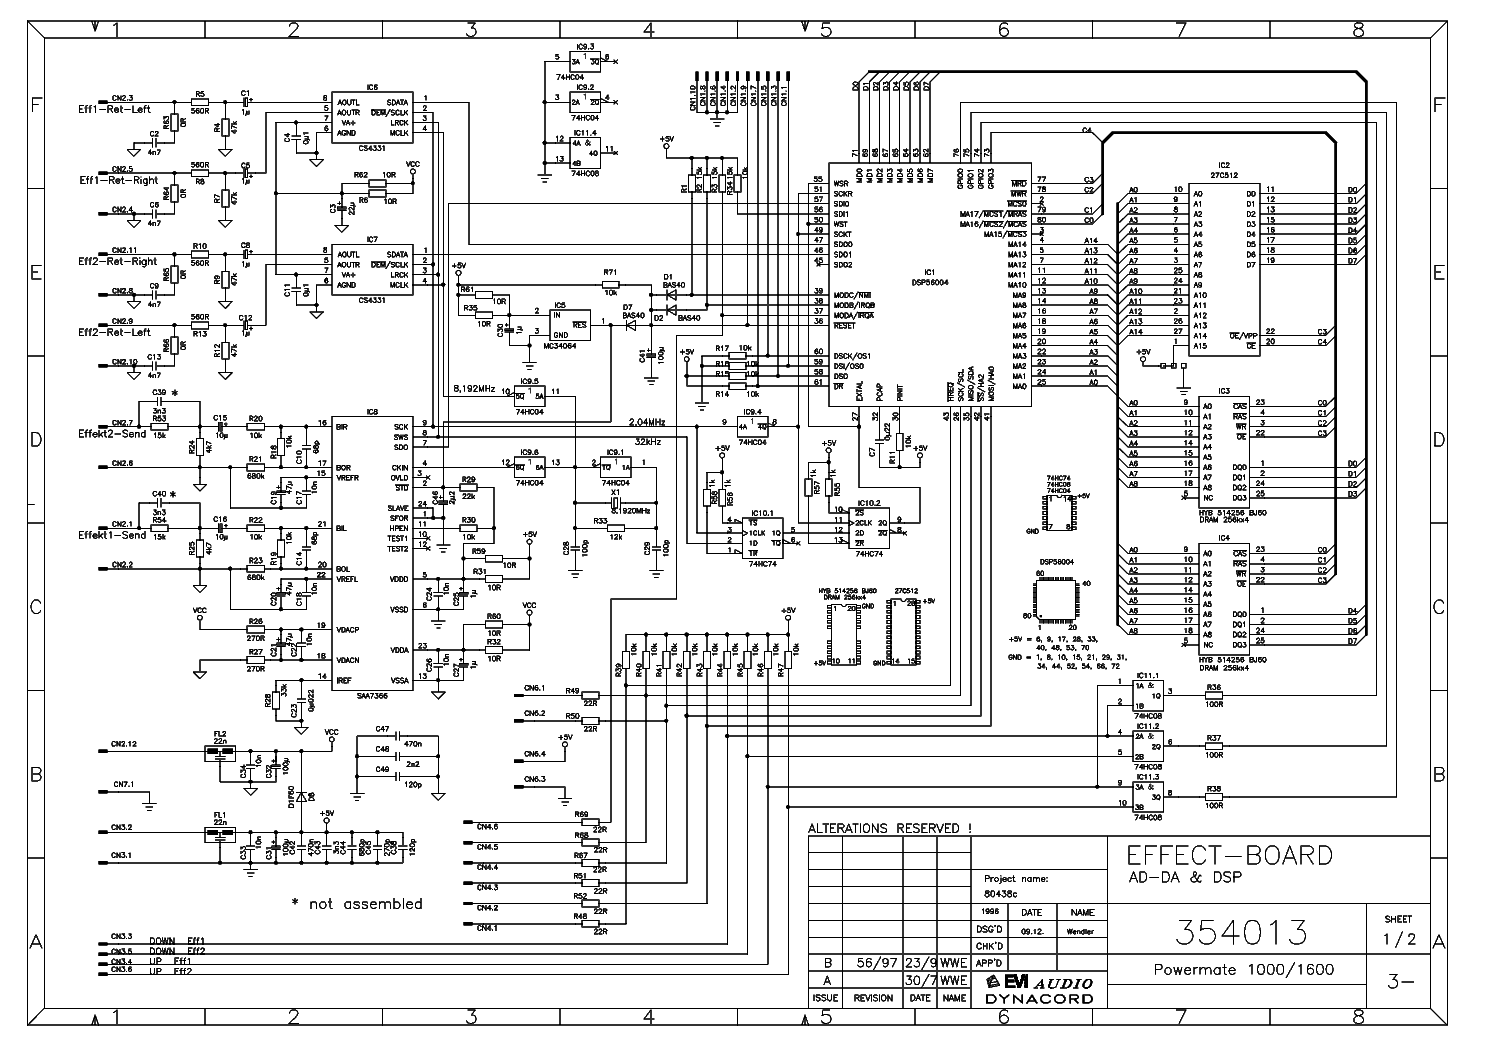 Dynacord Pm Sch Service Manual Download Schematics Eeprom Repair Info For Electronics Experts